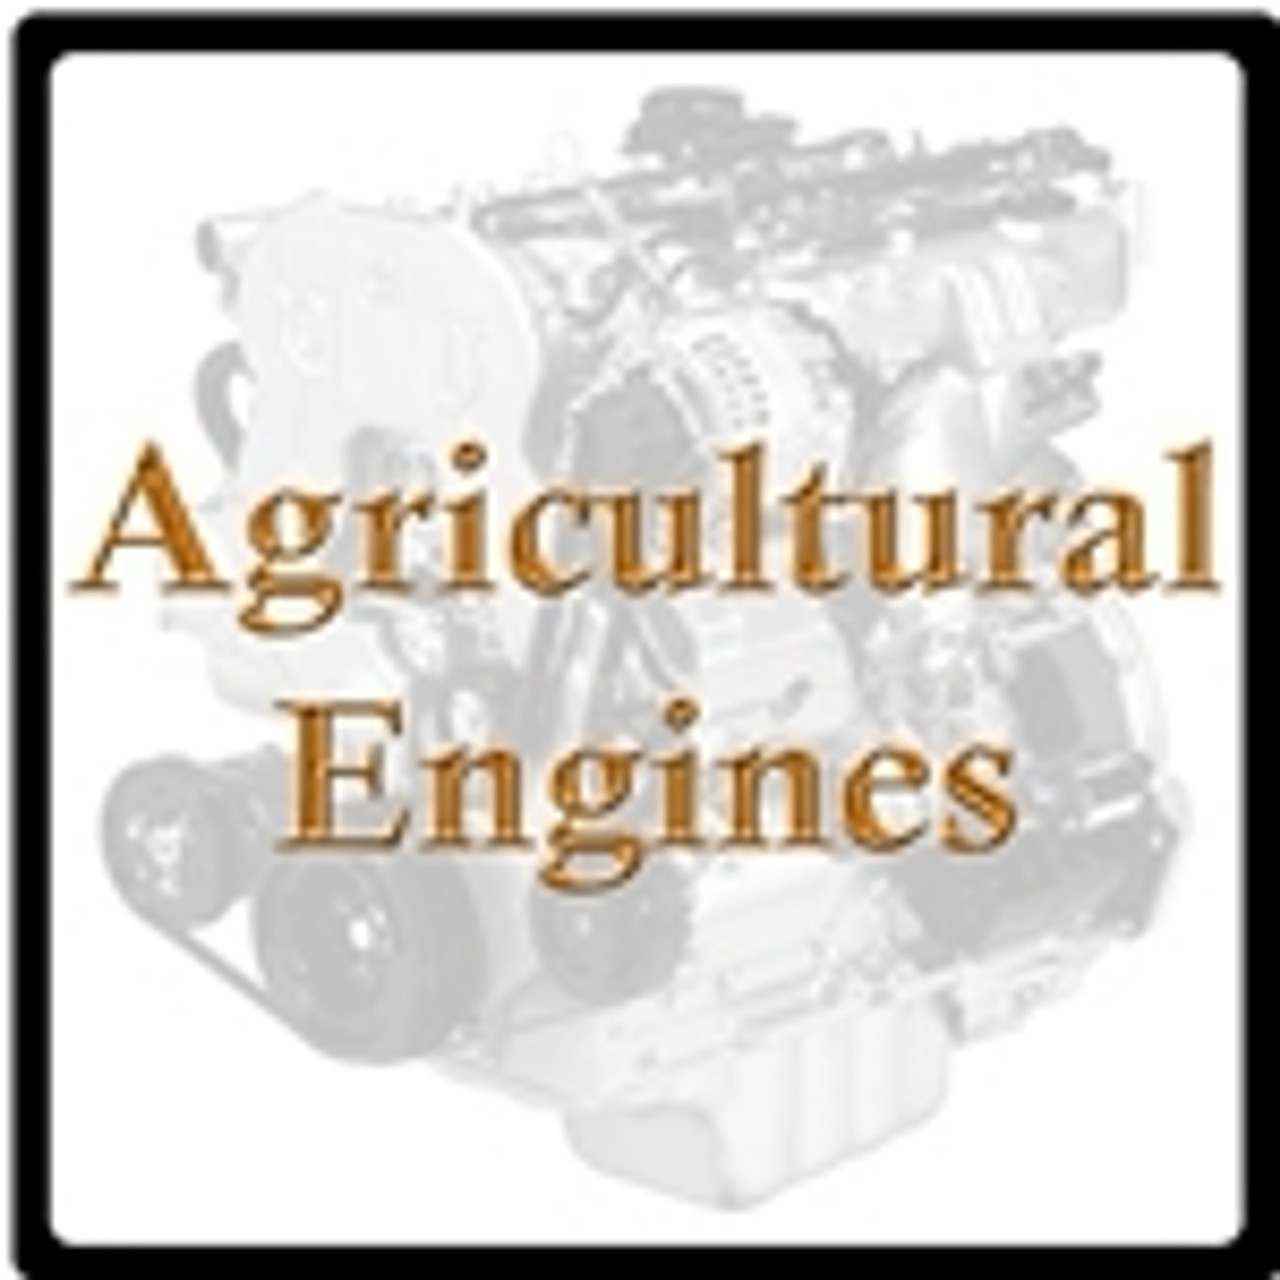 Agricultural Engines